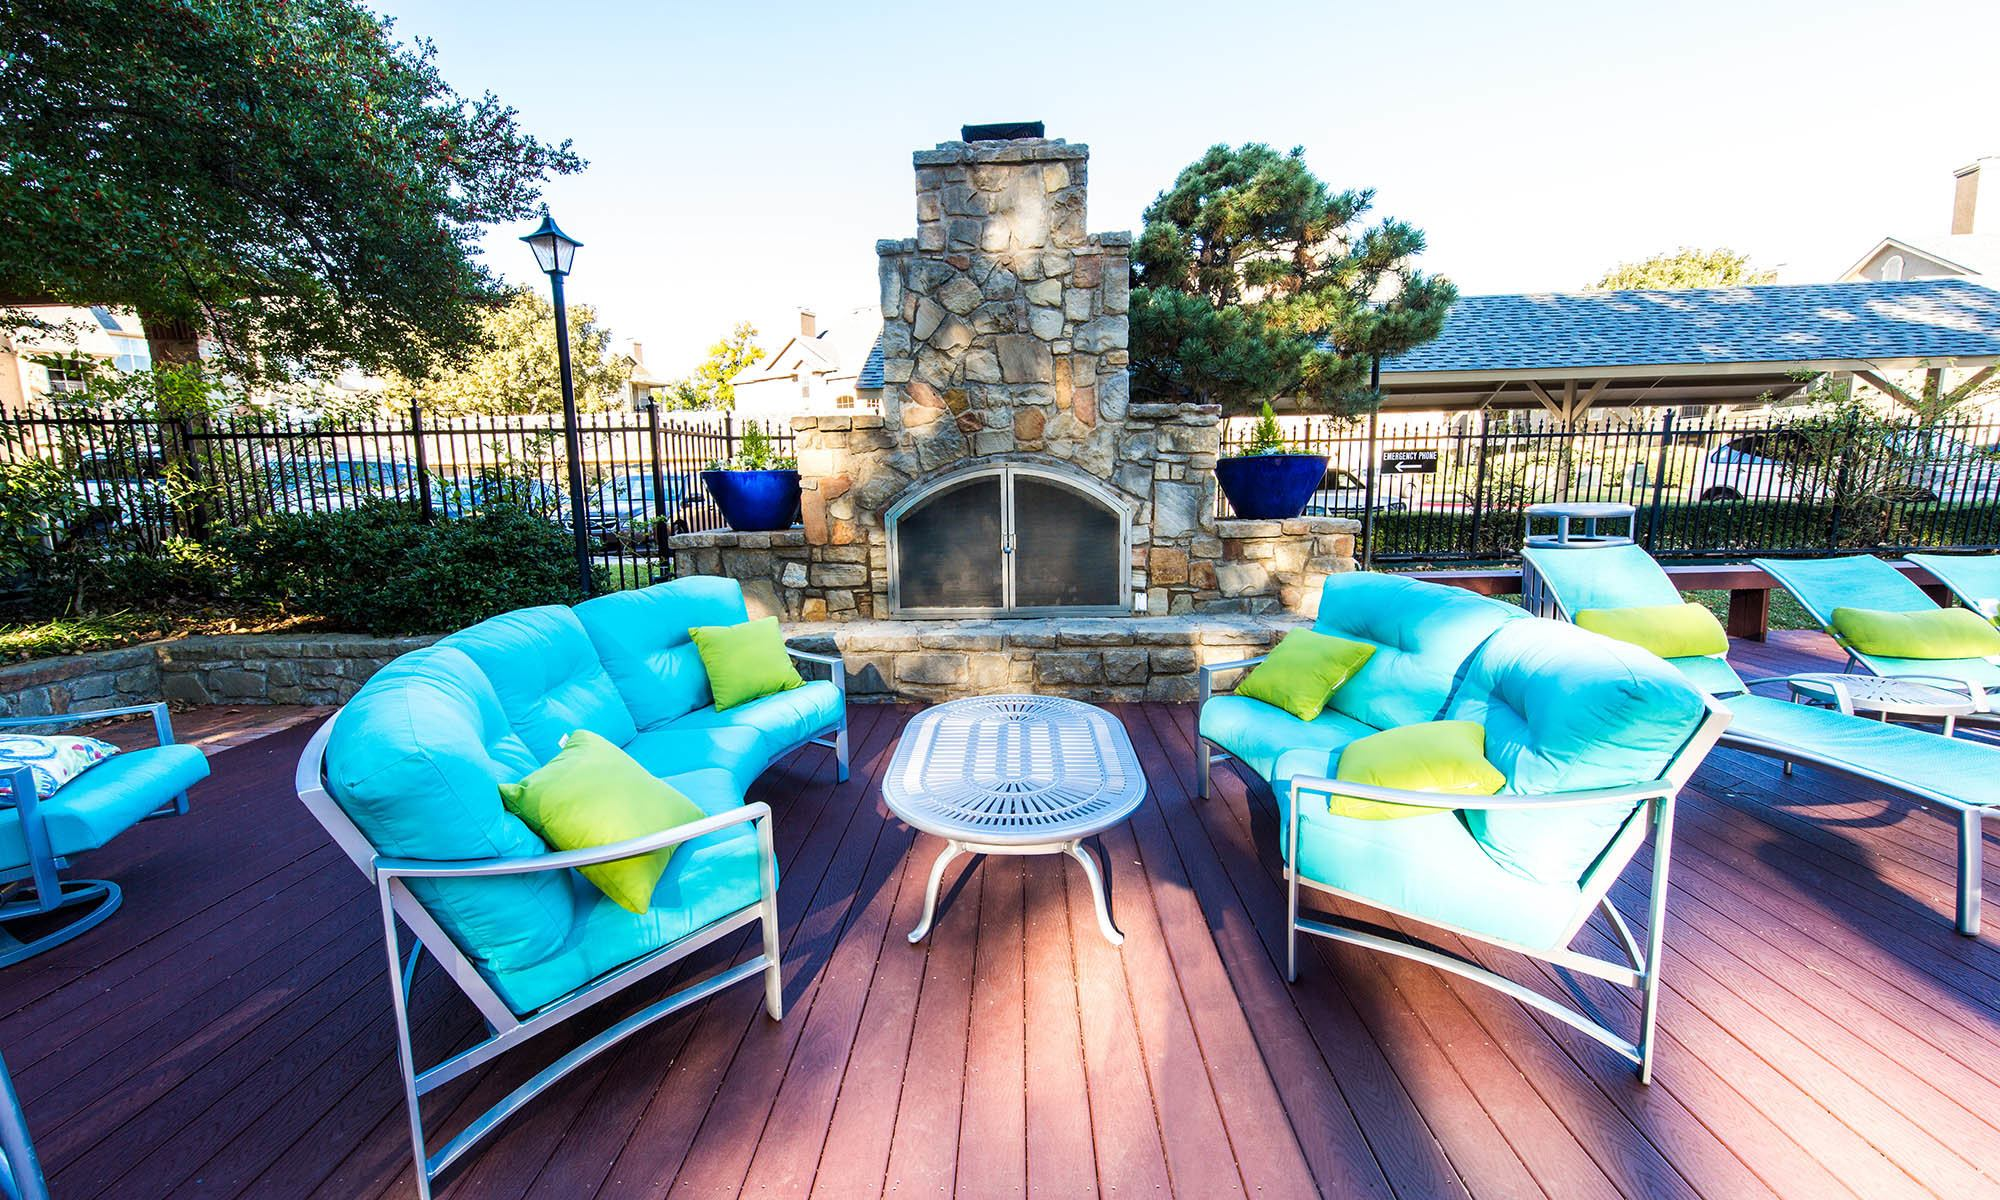 South Fort Worth Tx Apartments For Rent Marquis At Bellaire Ranch